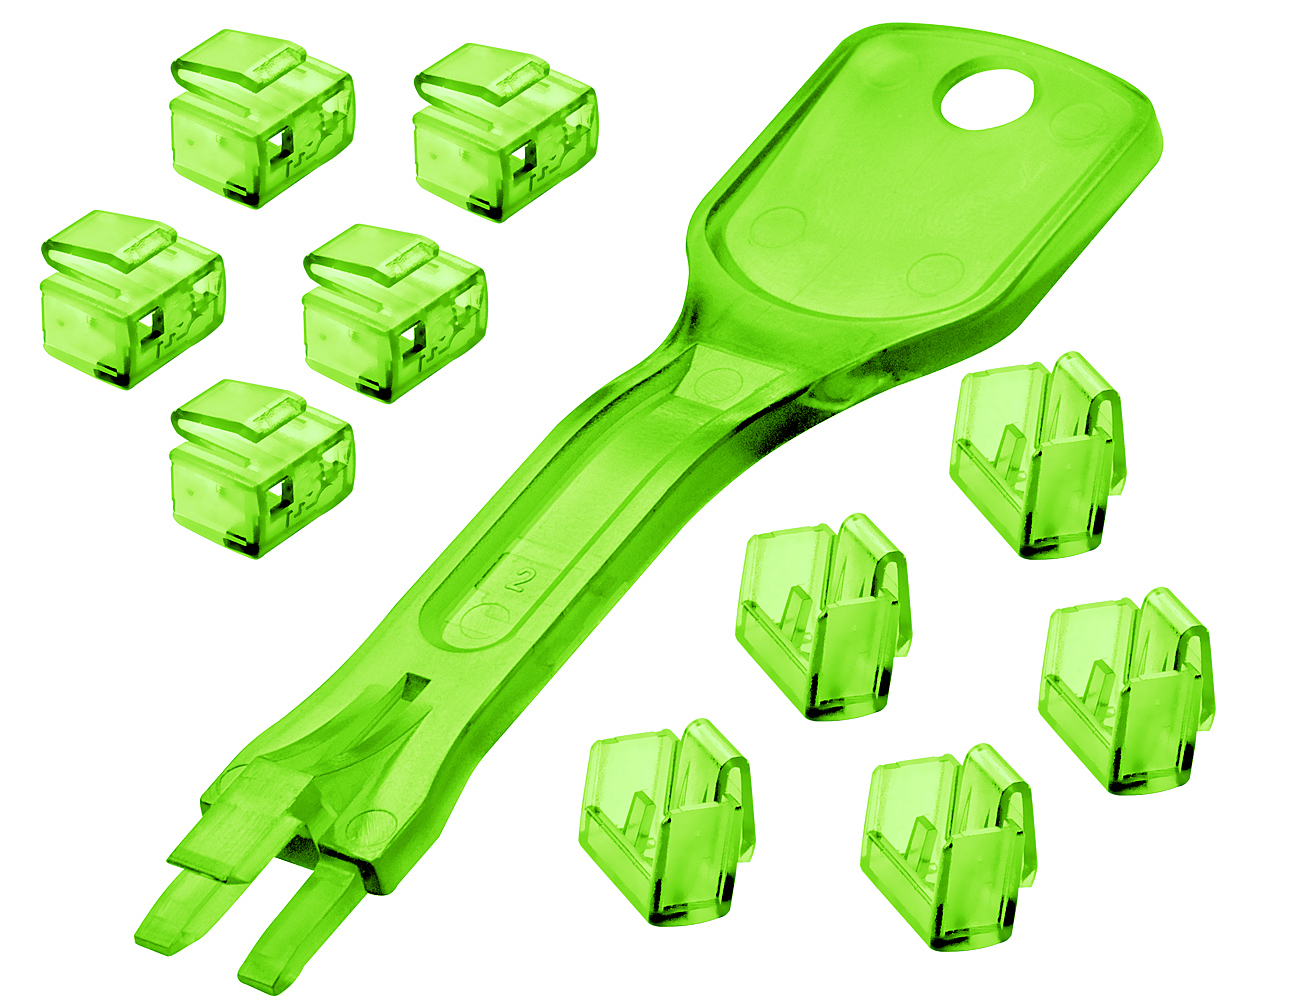 RJ-45 PORT BLOCKER KEY-PACK OF 10 BLOCKERS GREEN